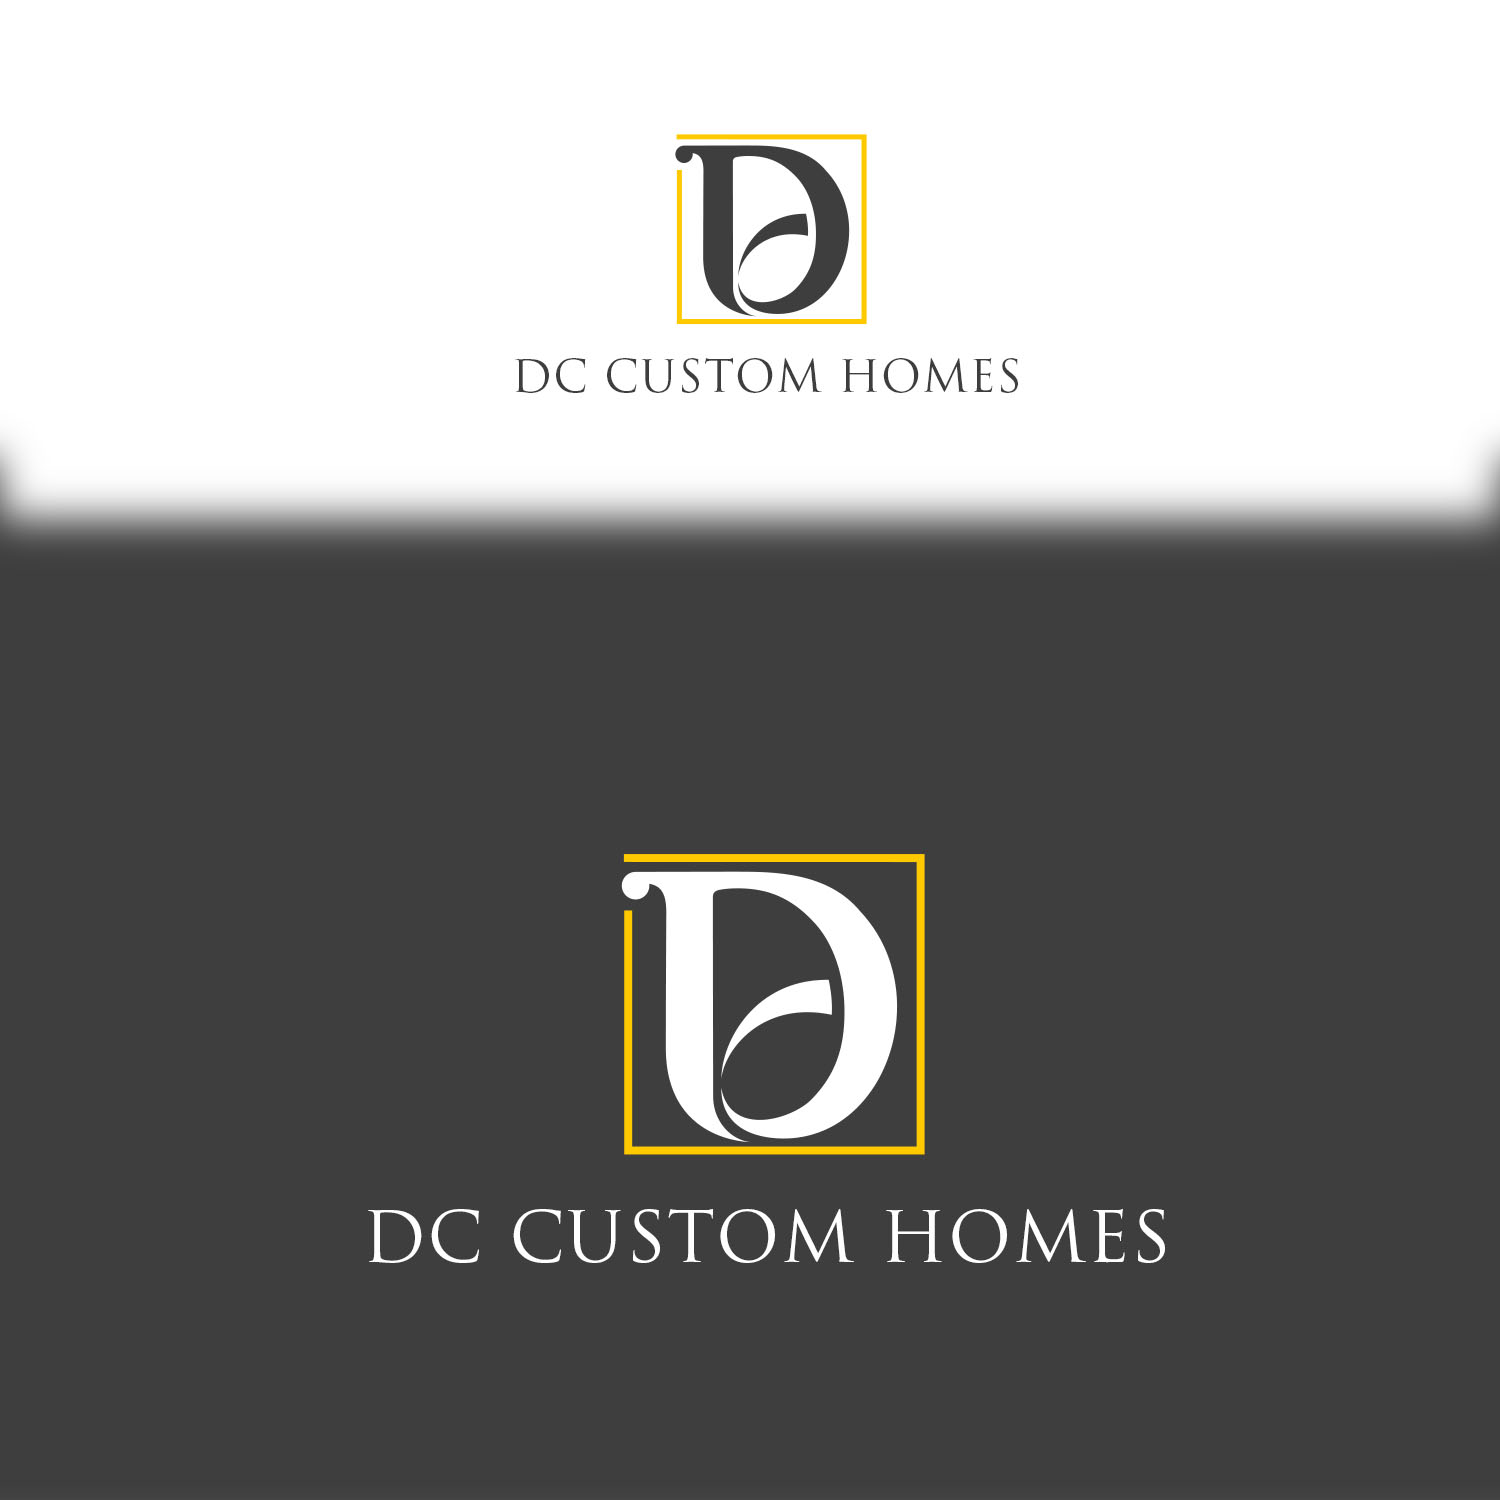 Logo Design by Private User - Entry No. 162 in the Logo Design Contest Creative Logo Design for DC Custom Homes.